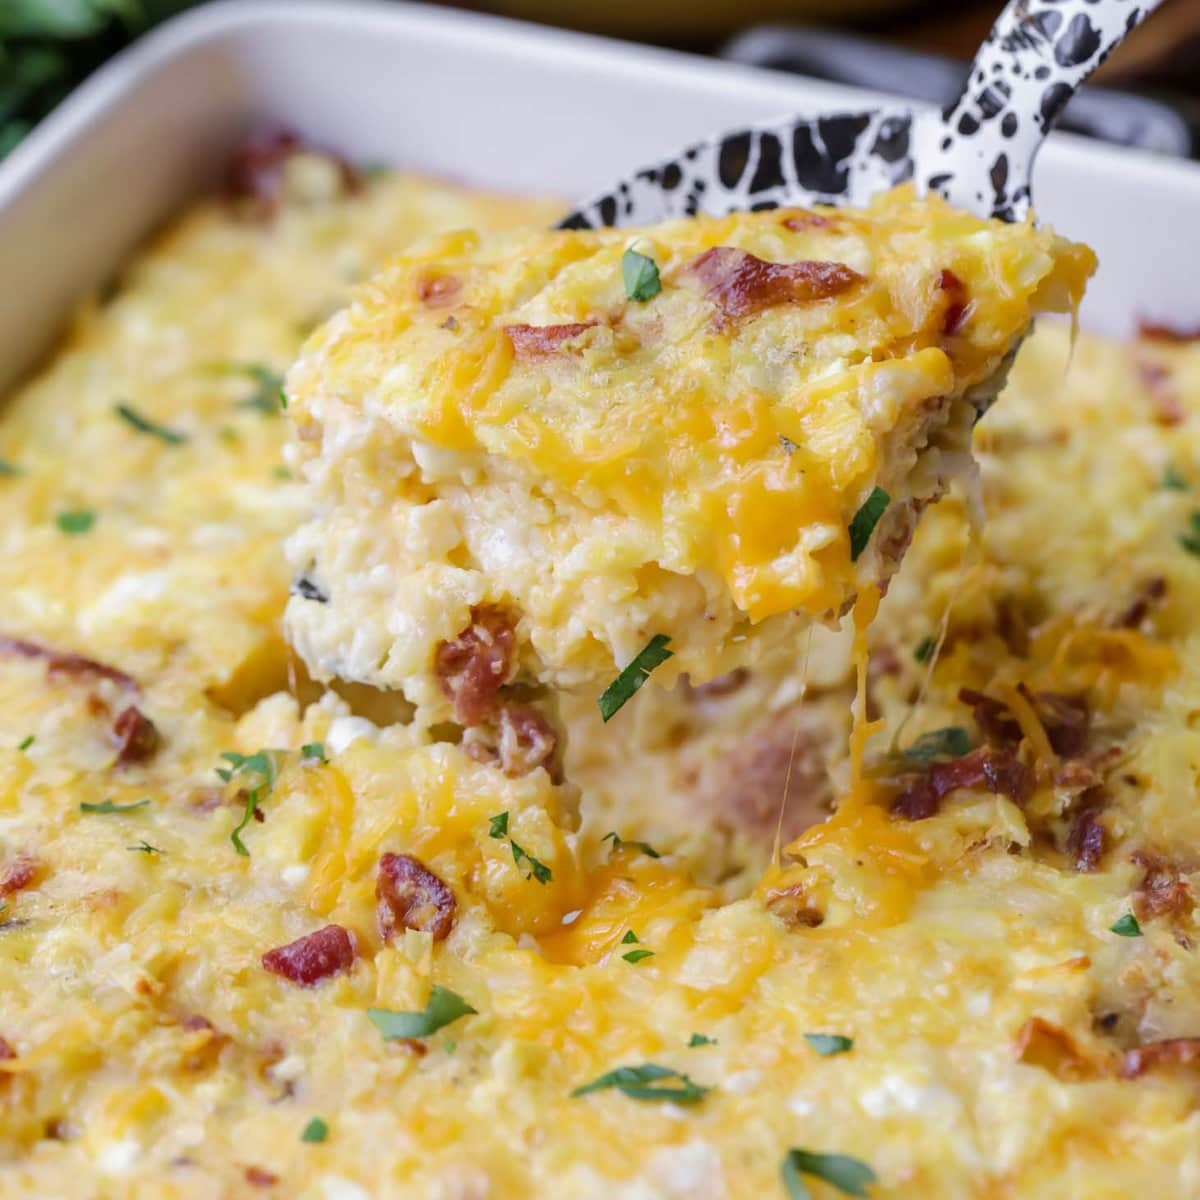 Egg bake recipes with hashbrowns and sausage